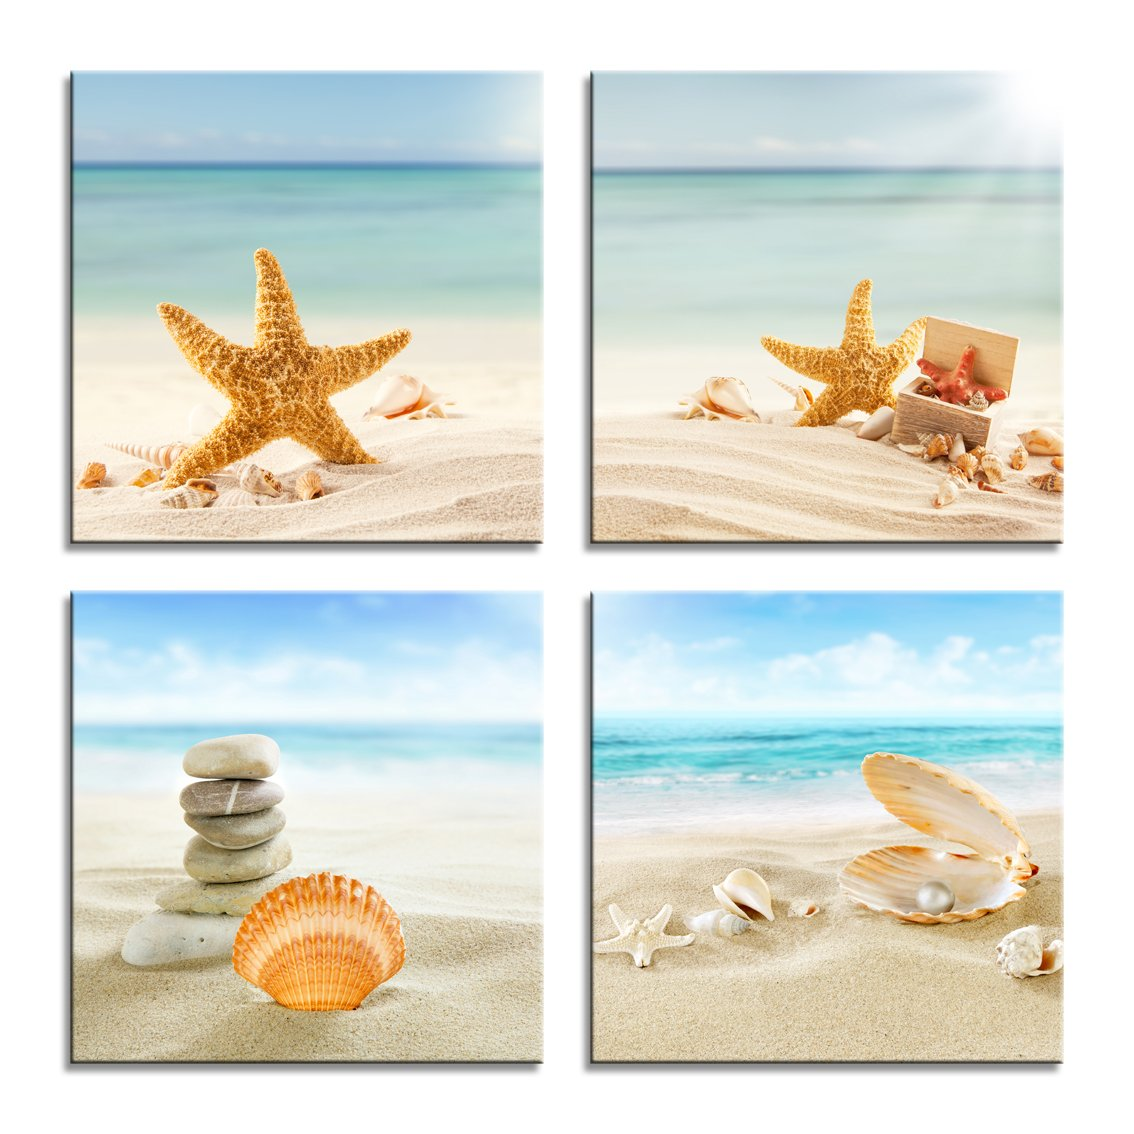 YPY Painting Beach Stone Sea Shells Sand Sunshine 4 PCS Wall Art Stretched Canvas Art Set Framed Ready to Hang (Blue, 12x12in) by YPY